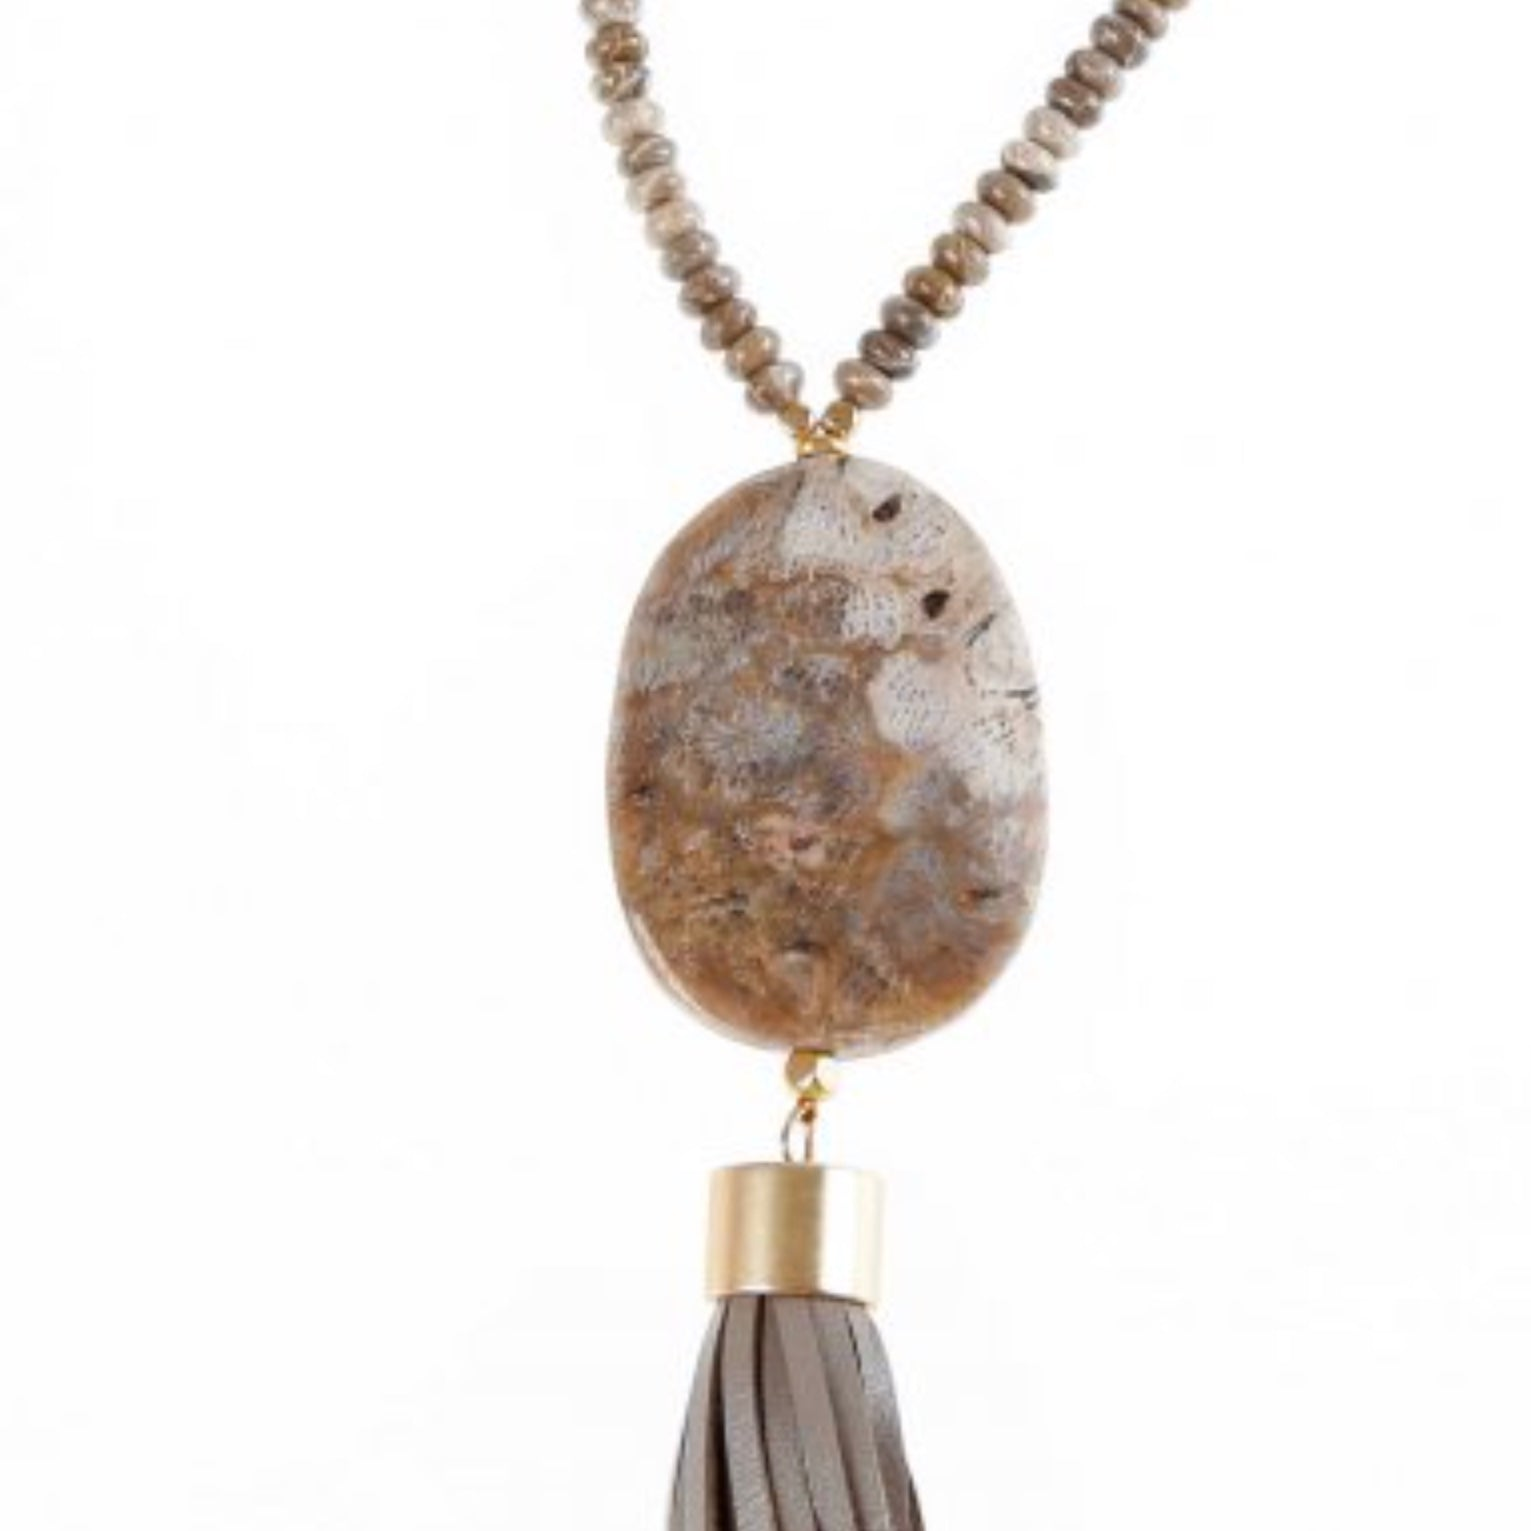 Pranella Detroit Taupe Tassel Necklace